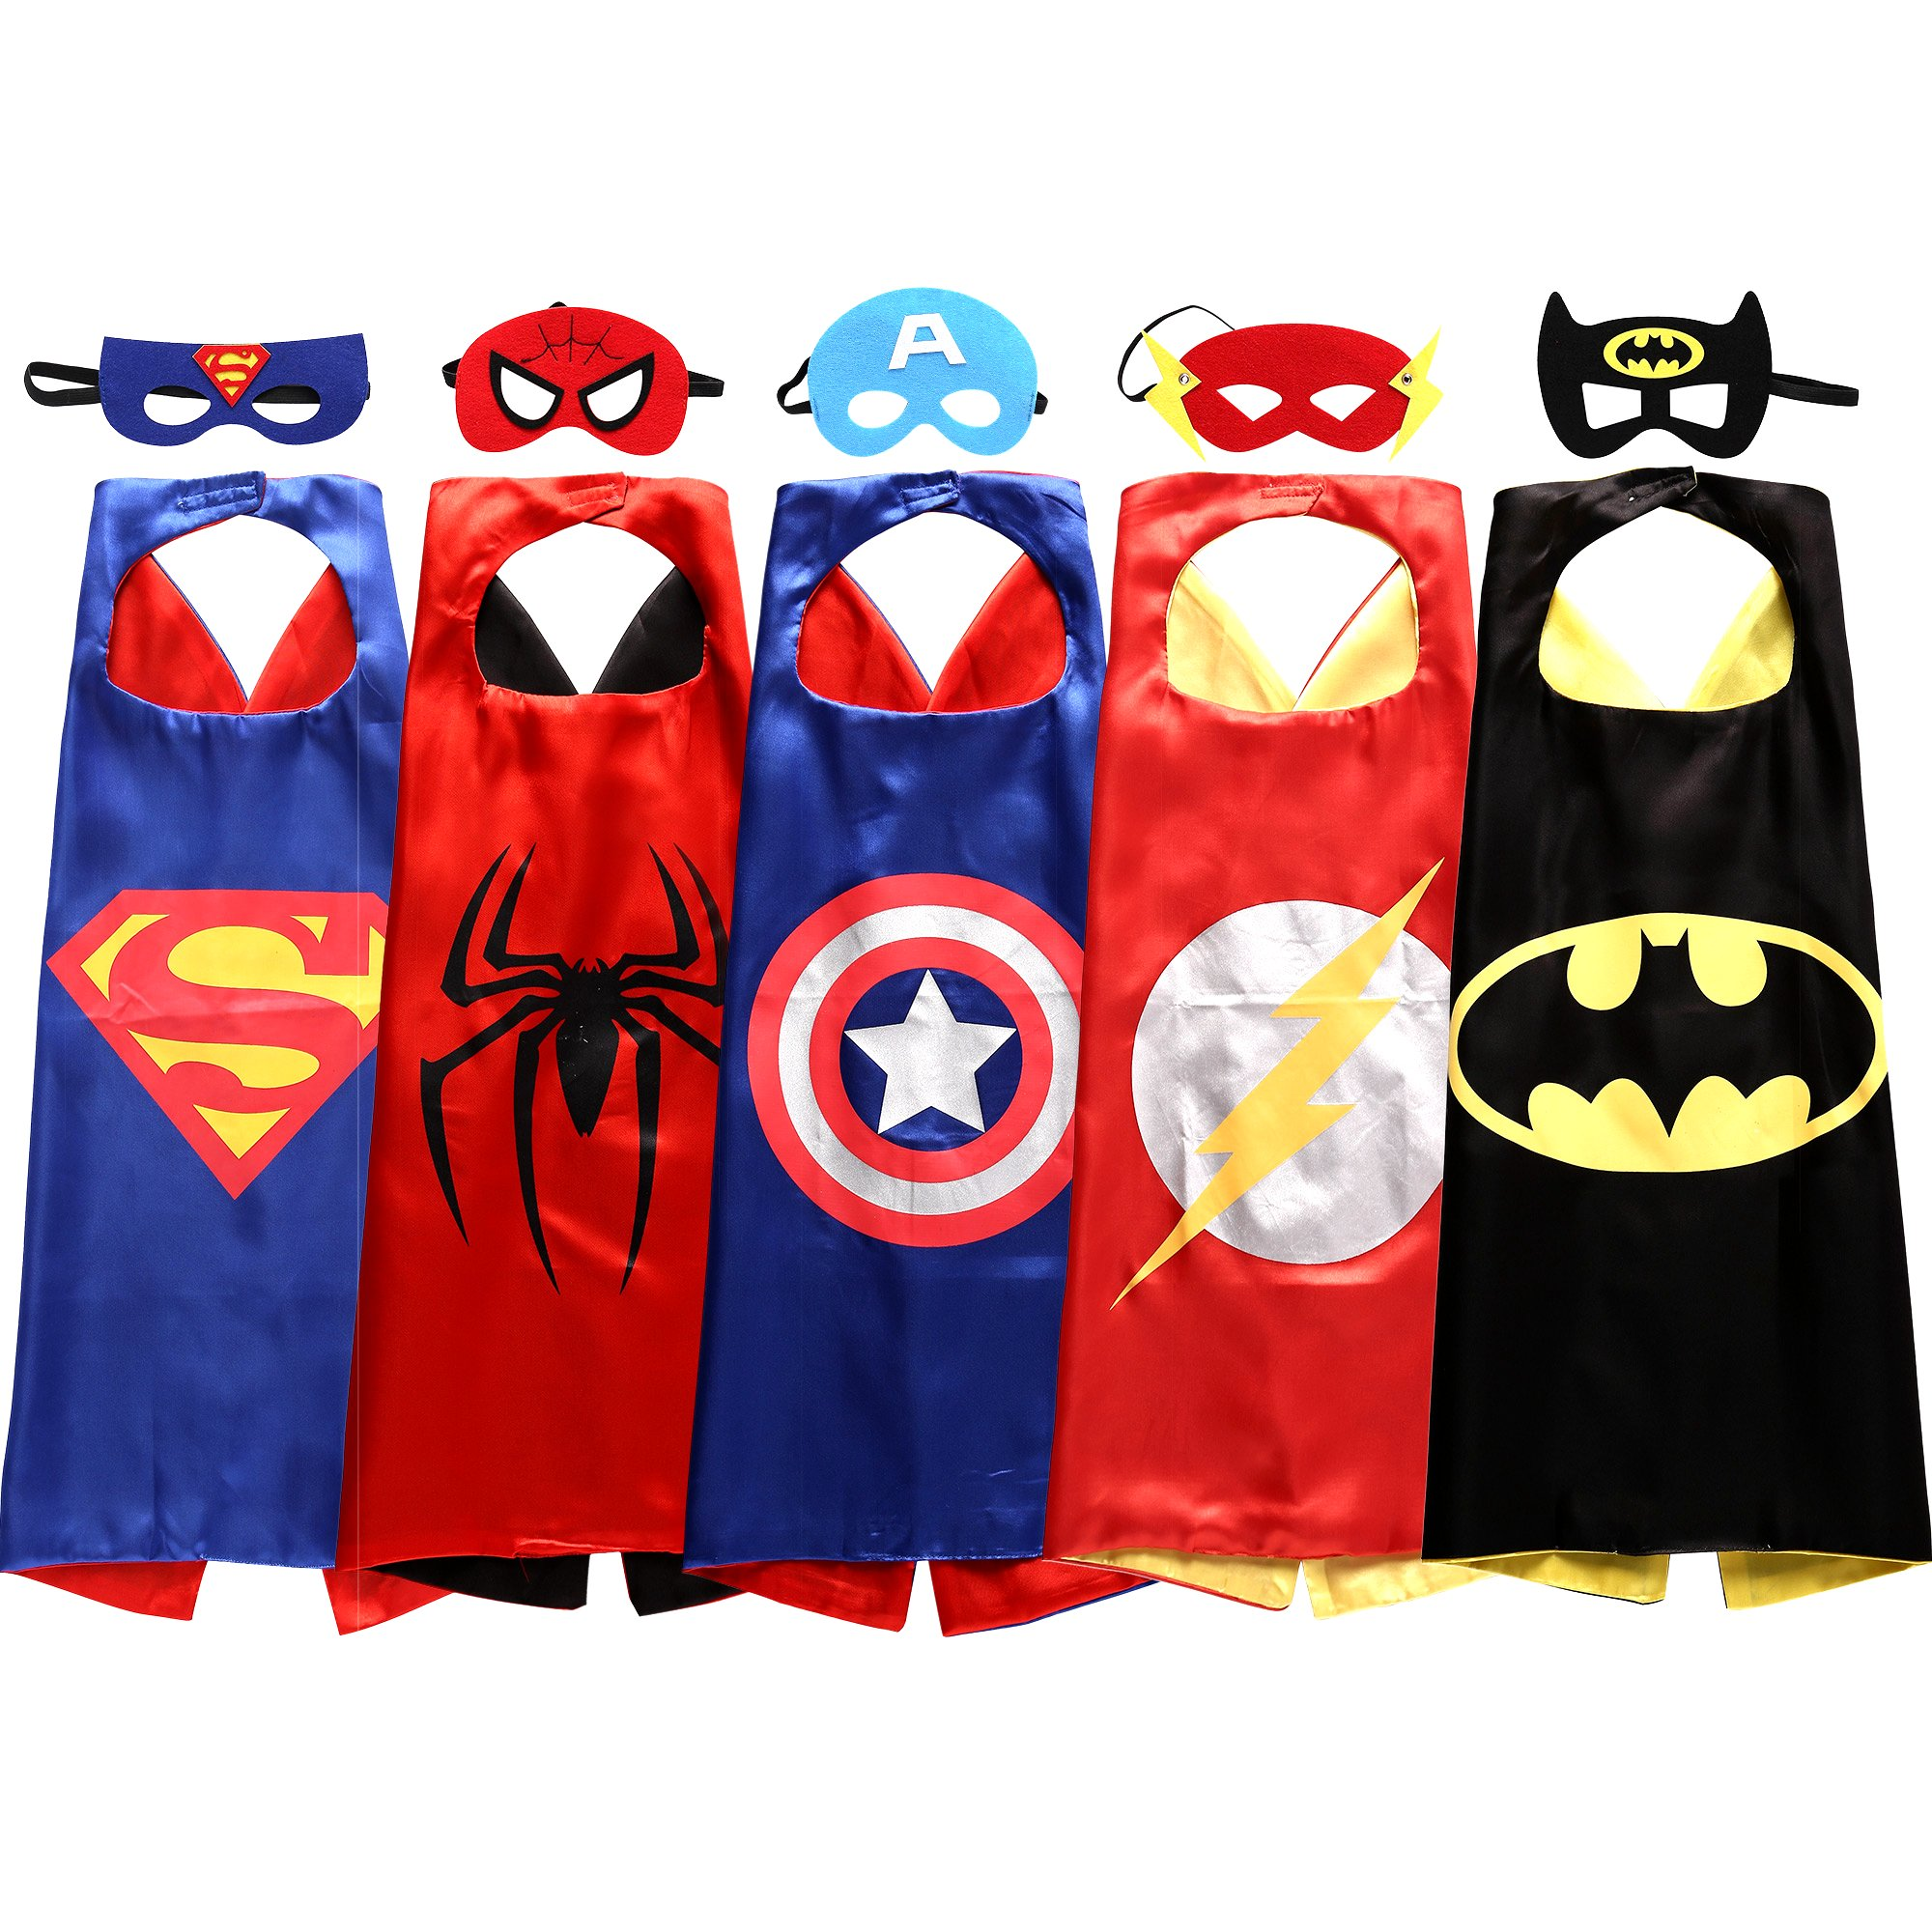 Superhero Capes and Masks Costumes for Kids Set of 5